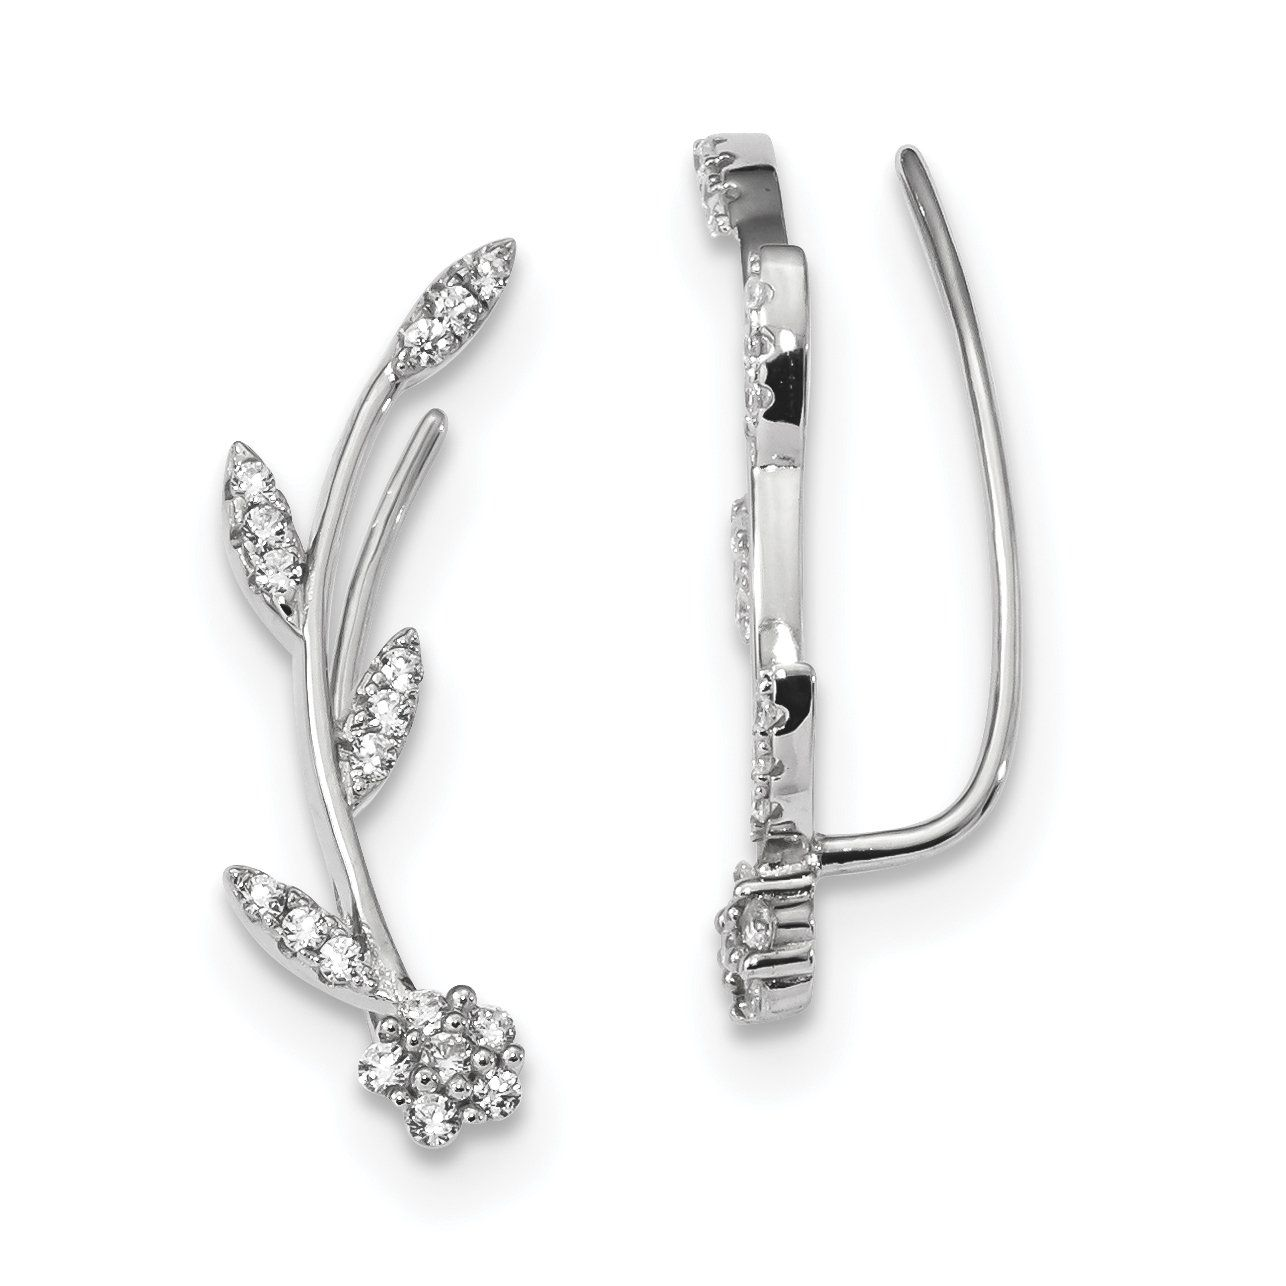 Sparkly Sterling Silver CZ Ear Climber Earrings